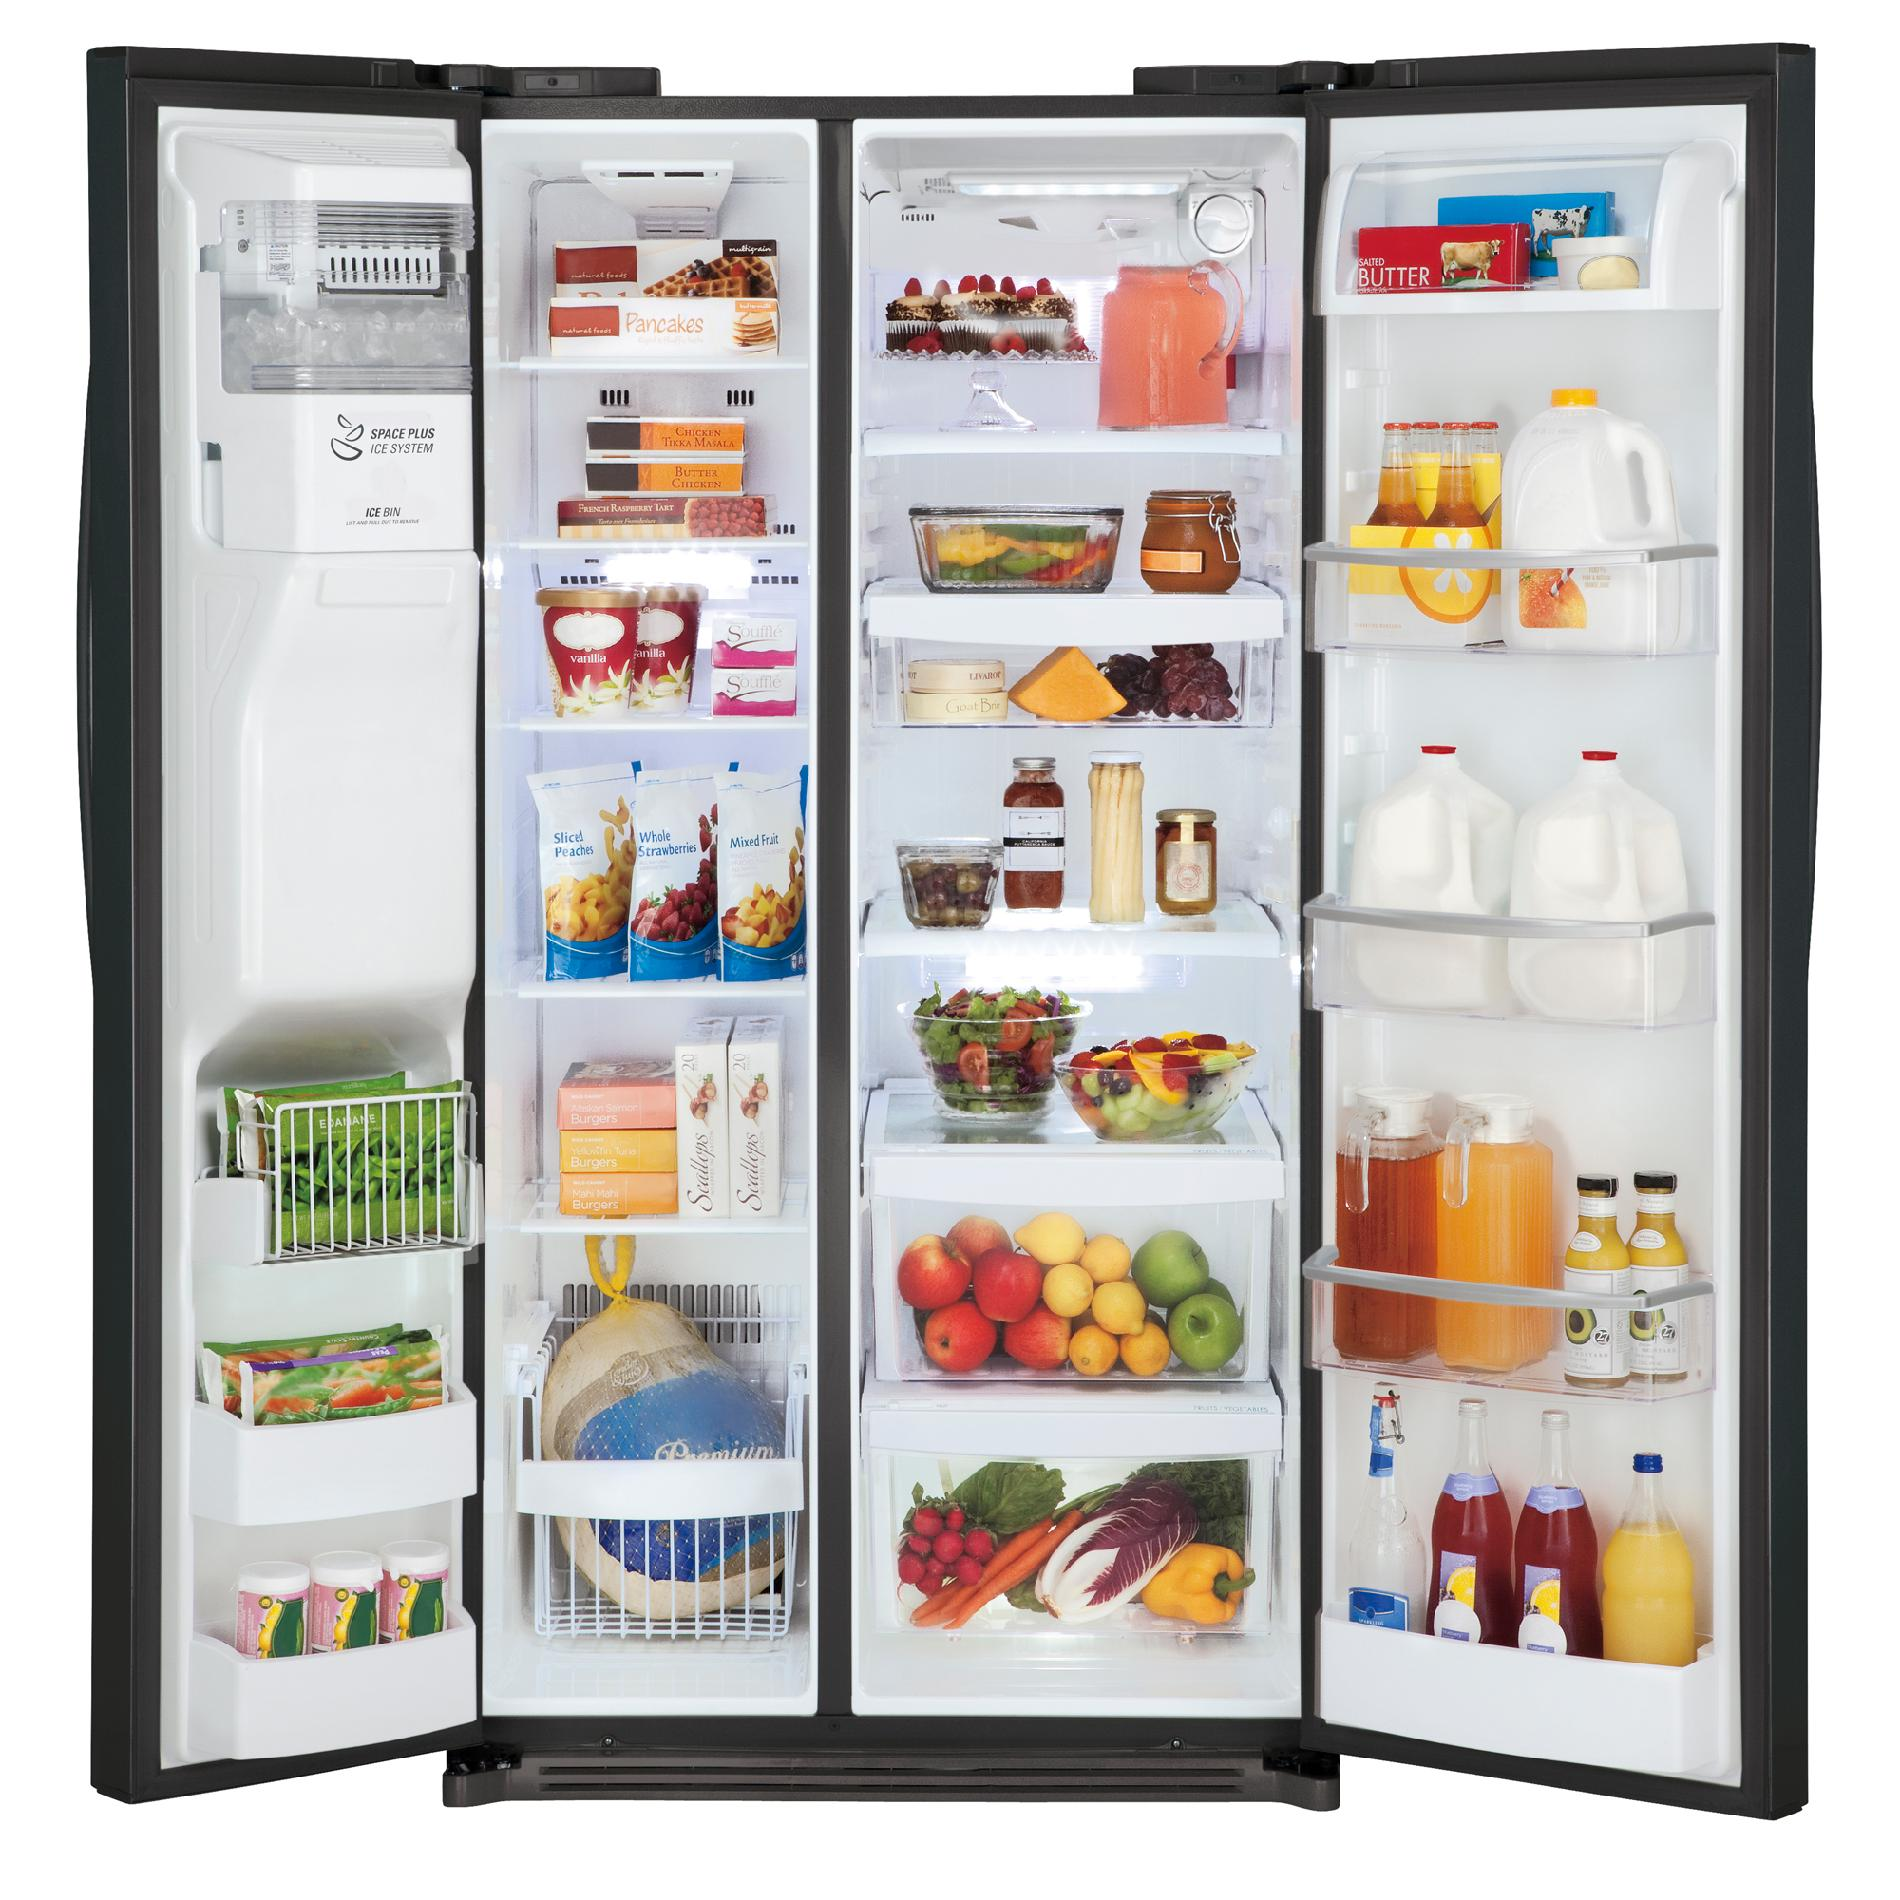 LG 27 cu.ft. Side-by-Side Refrigerator w/ Slim SpacePlus™ Ice System – Black